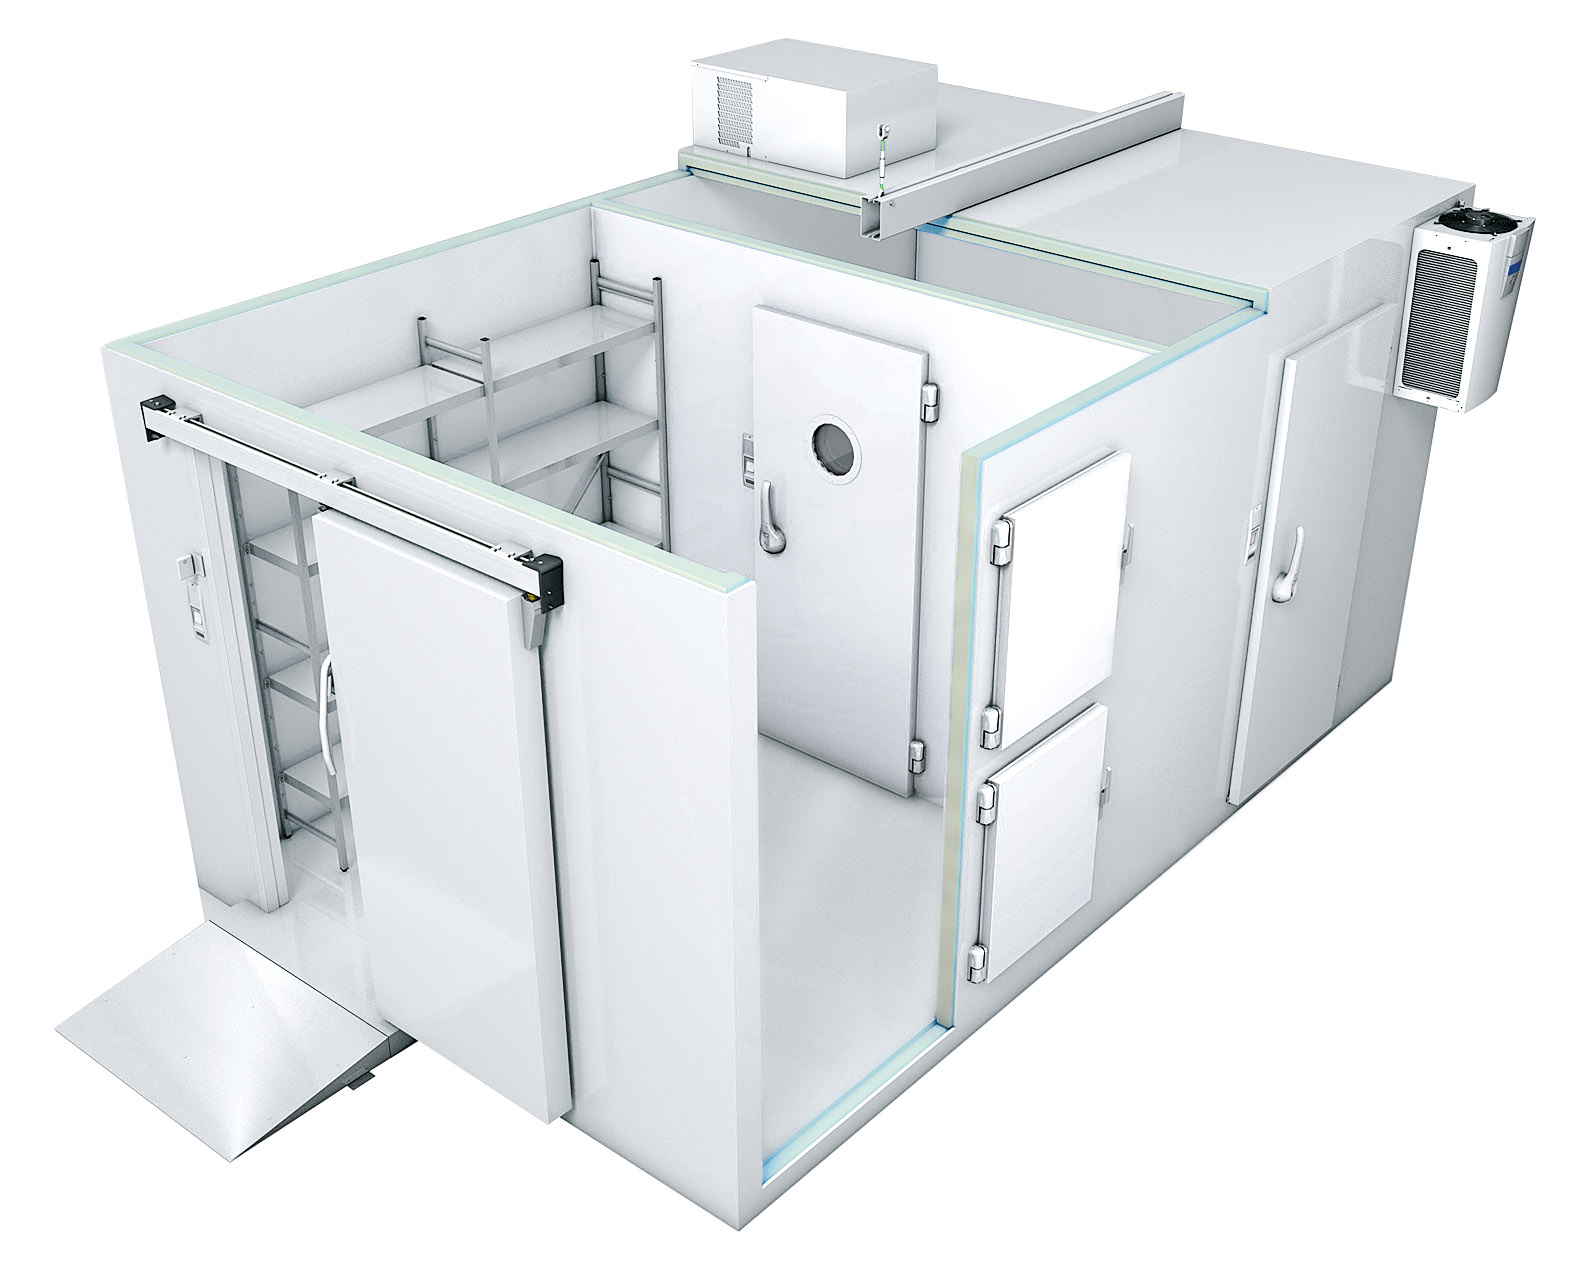 SPECIAL OFFER COLD ROOM Price £3,850